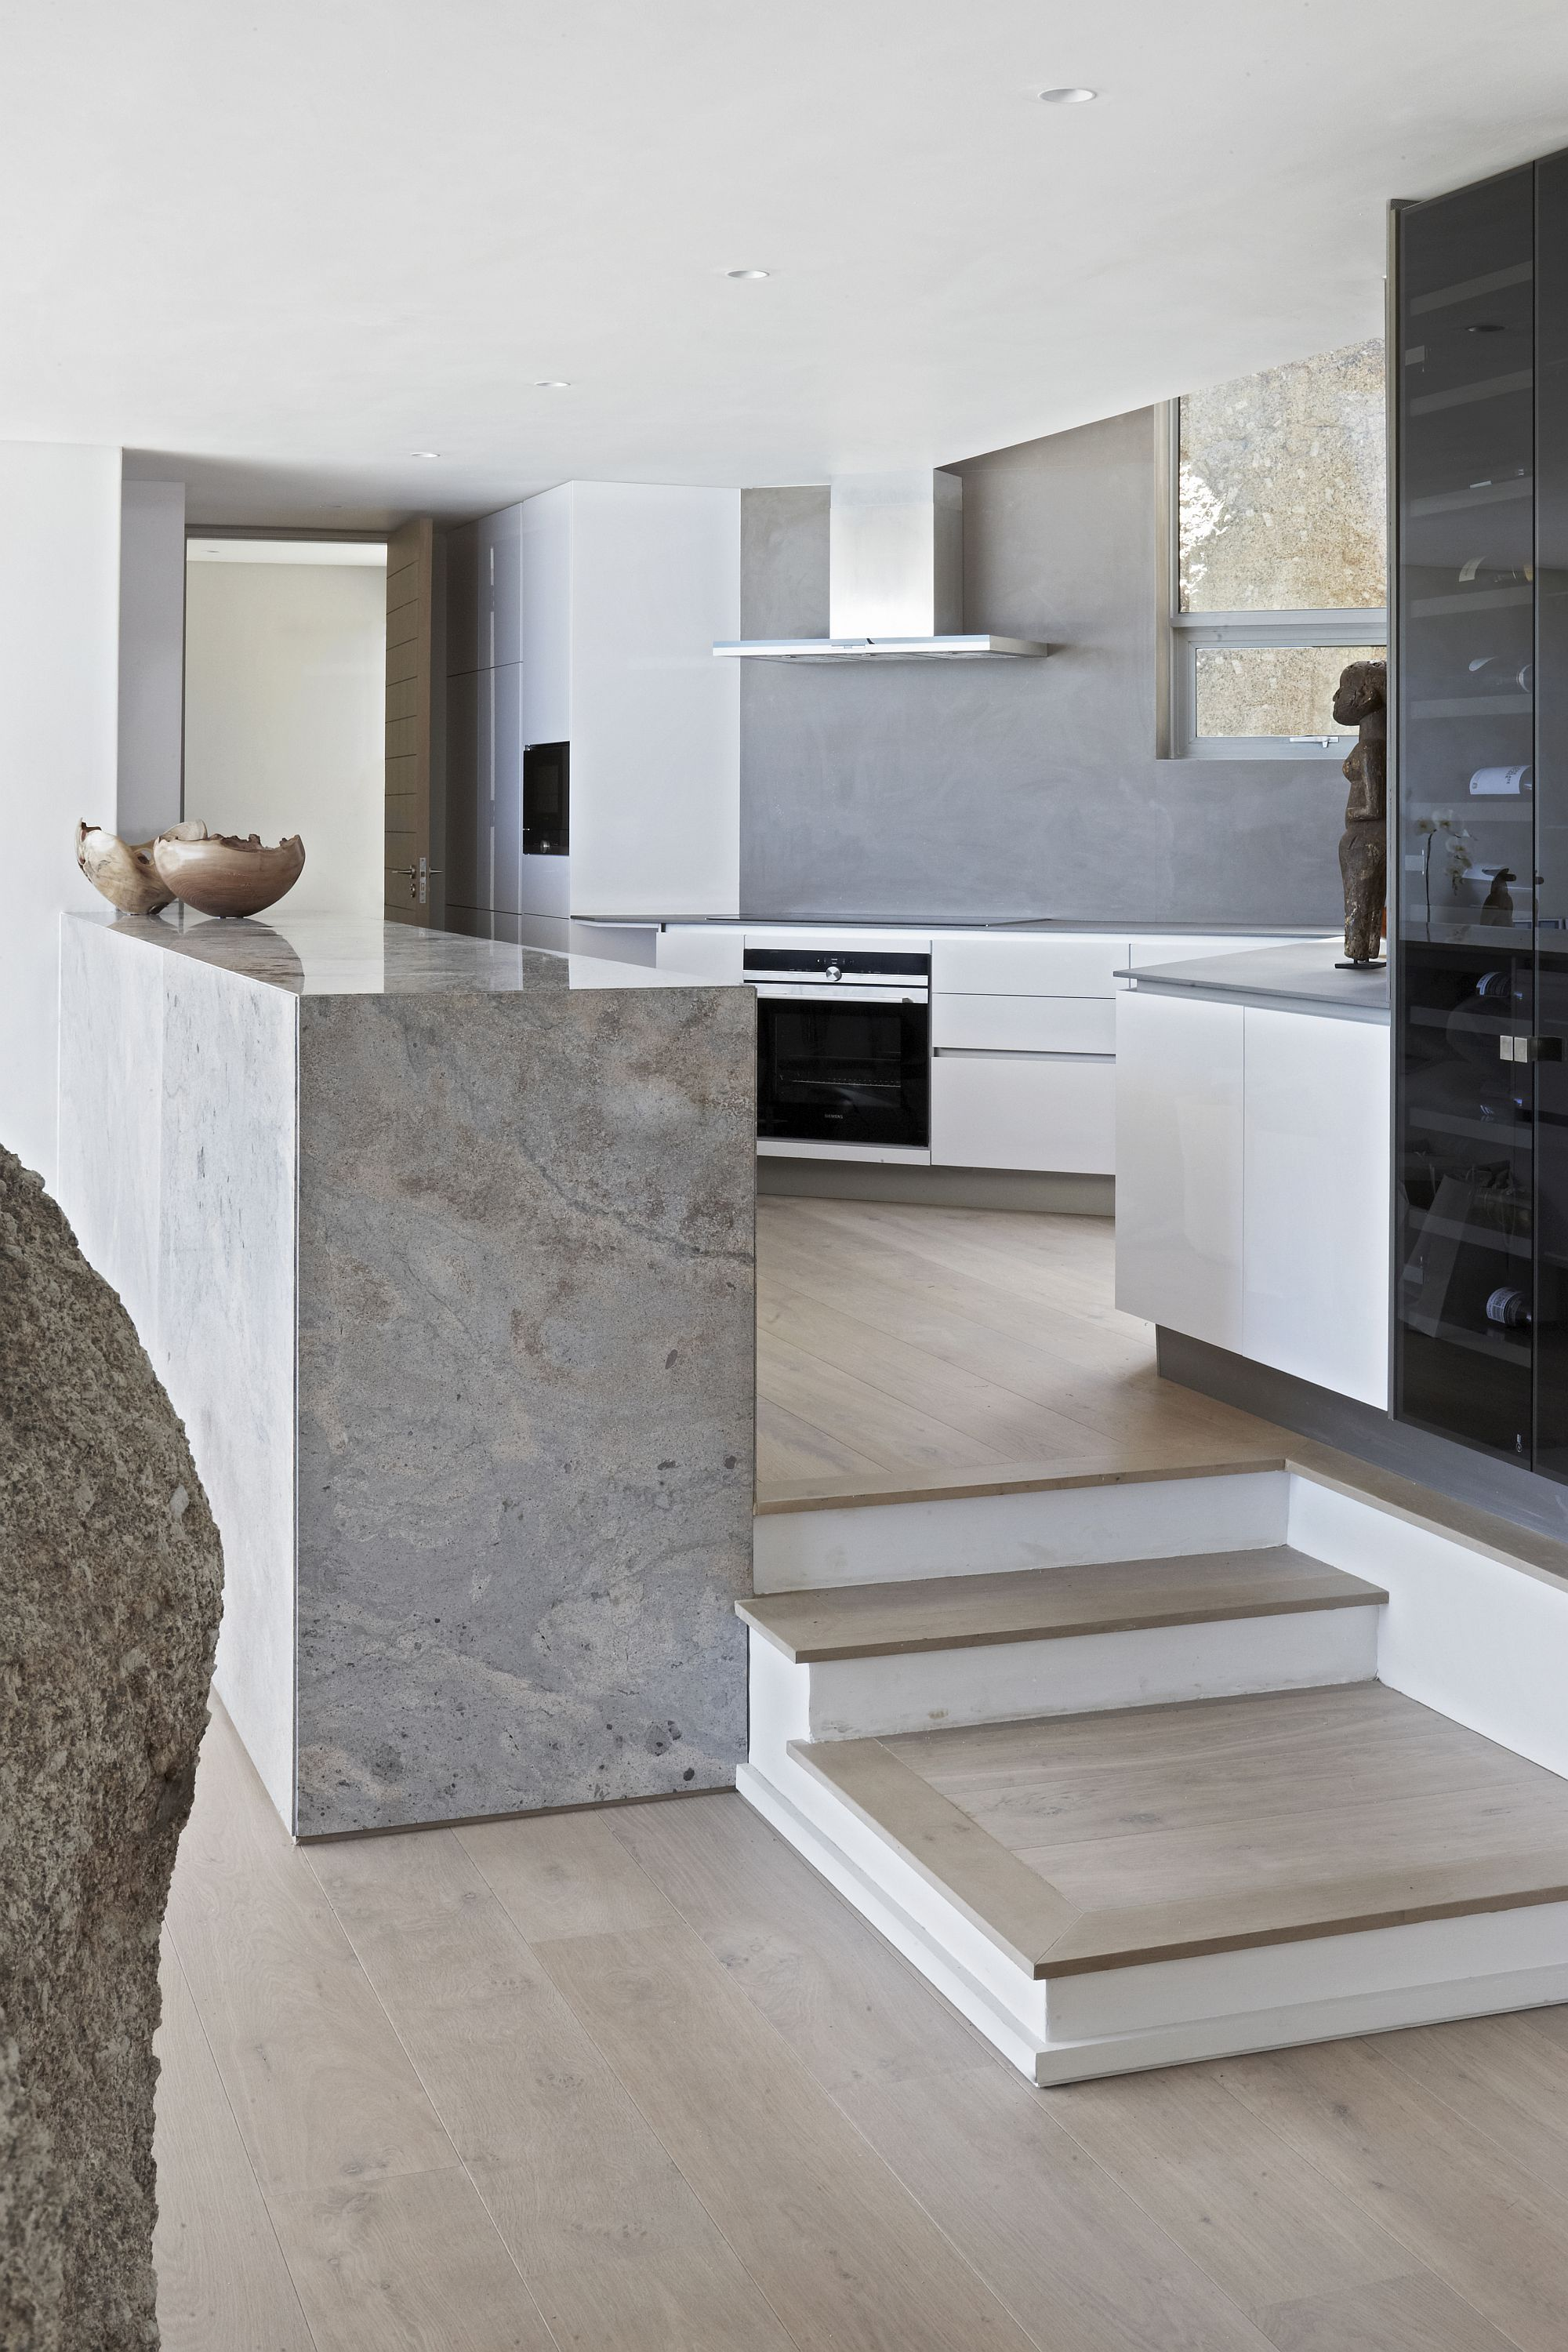 Kitchen on an elevated level gives the interior more curated look